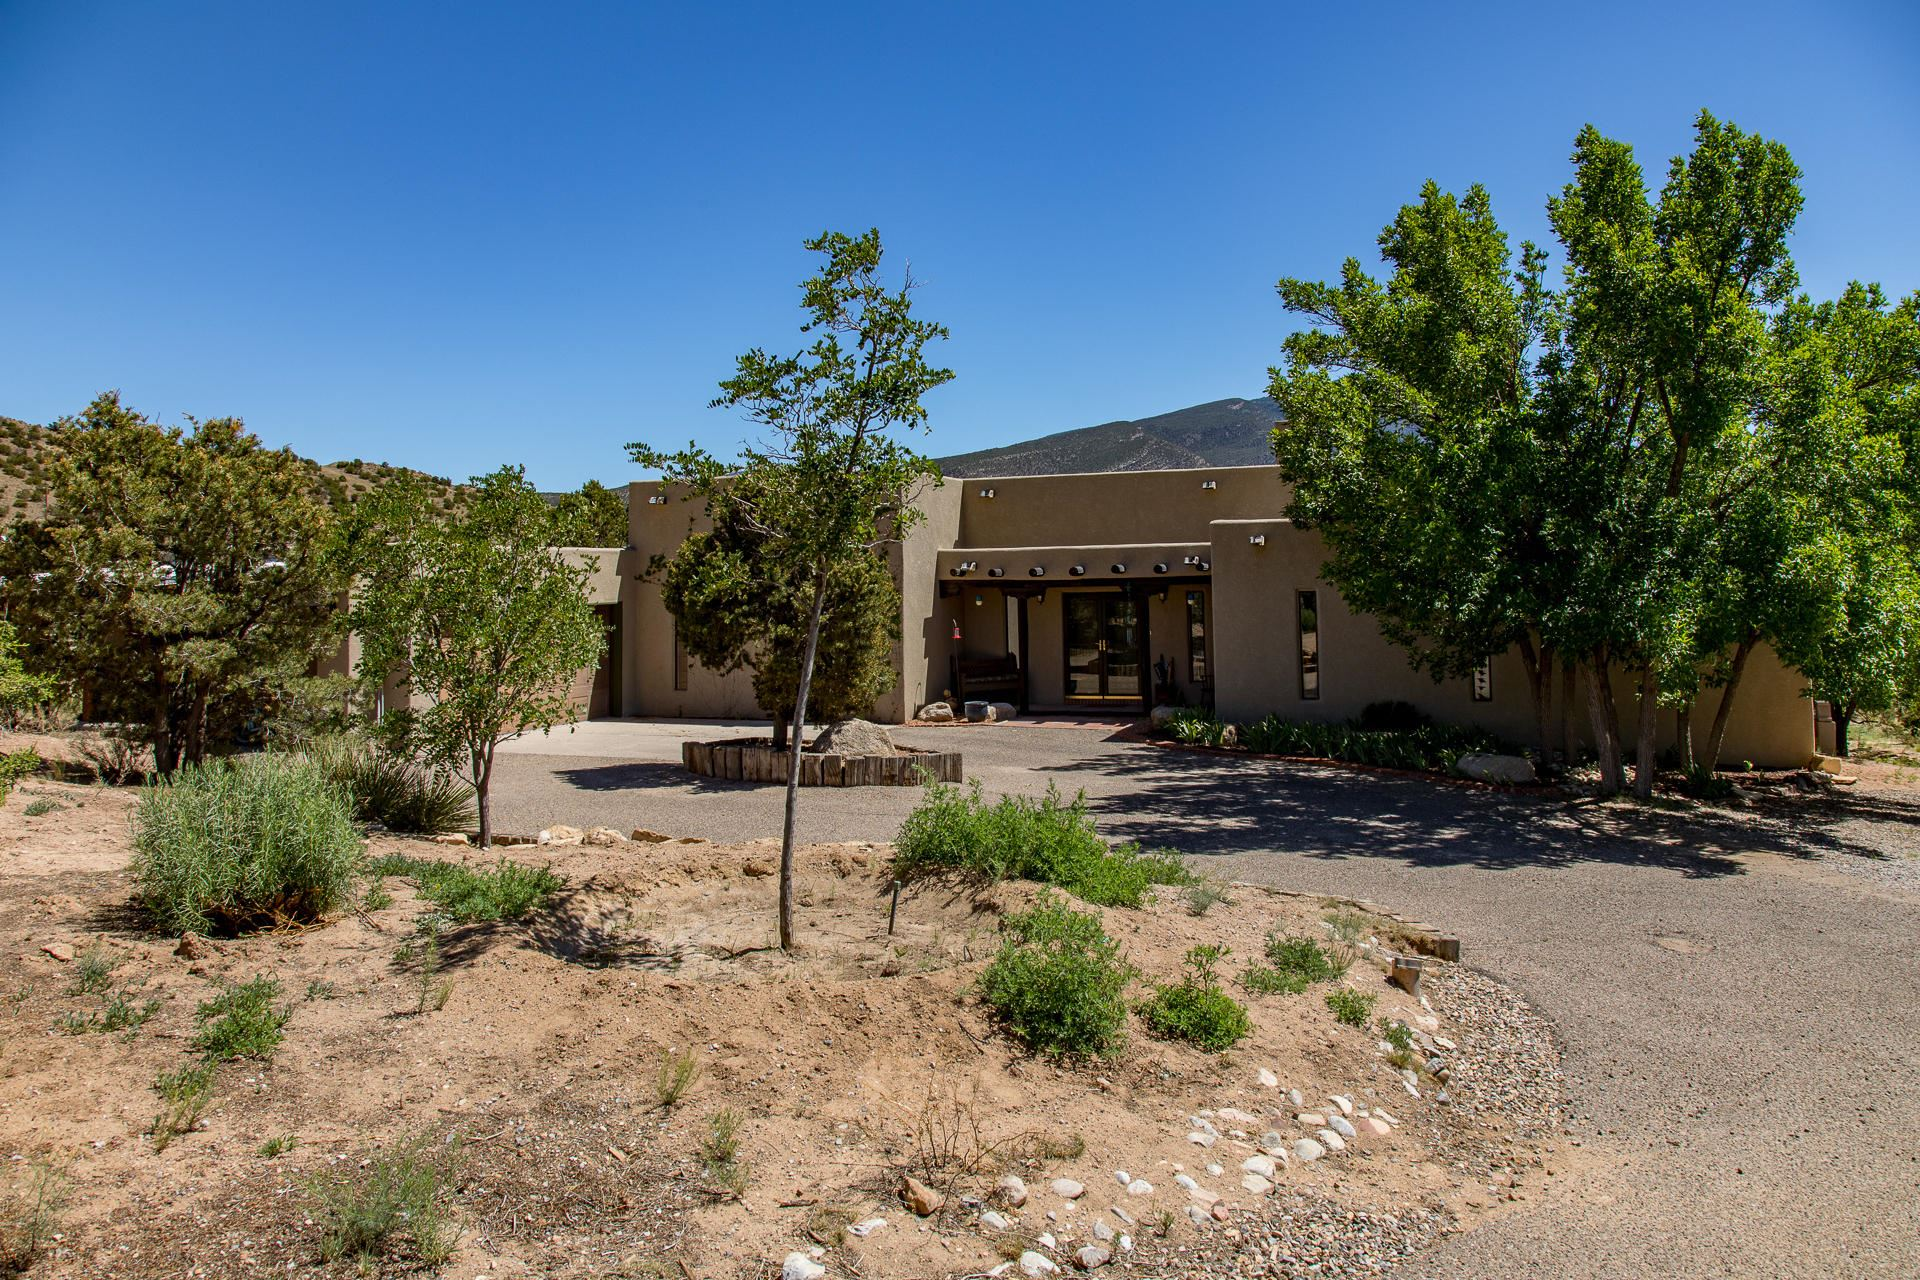 Photo of 153 CAMINO DE LAS HUERTAS, Placitas, NM 87043 (MLS # 970292)